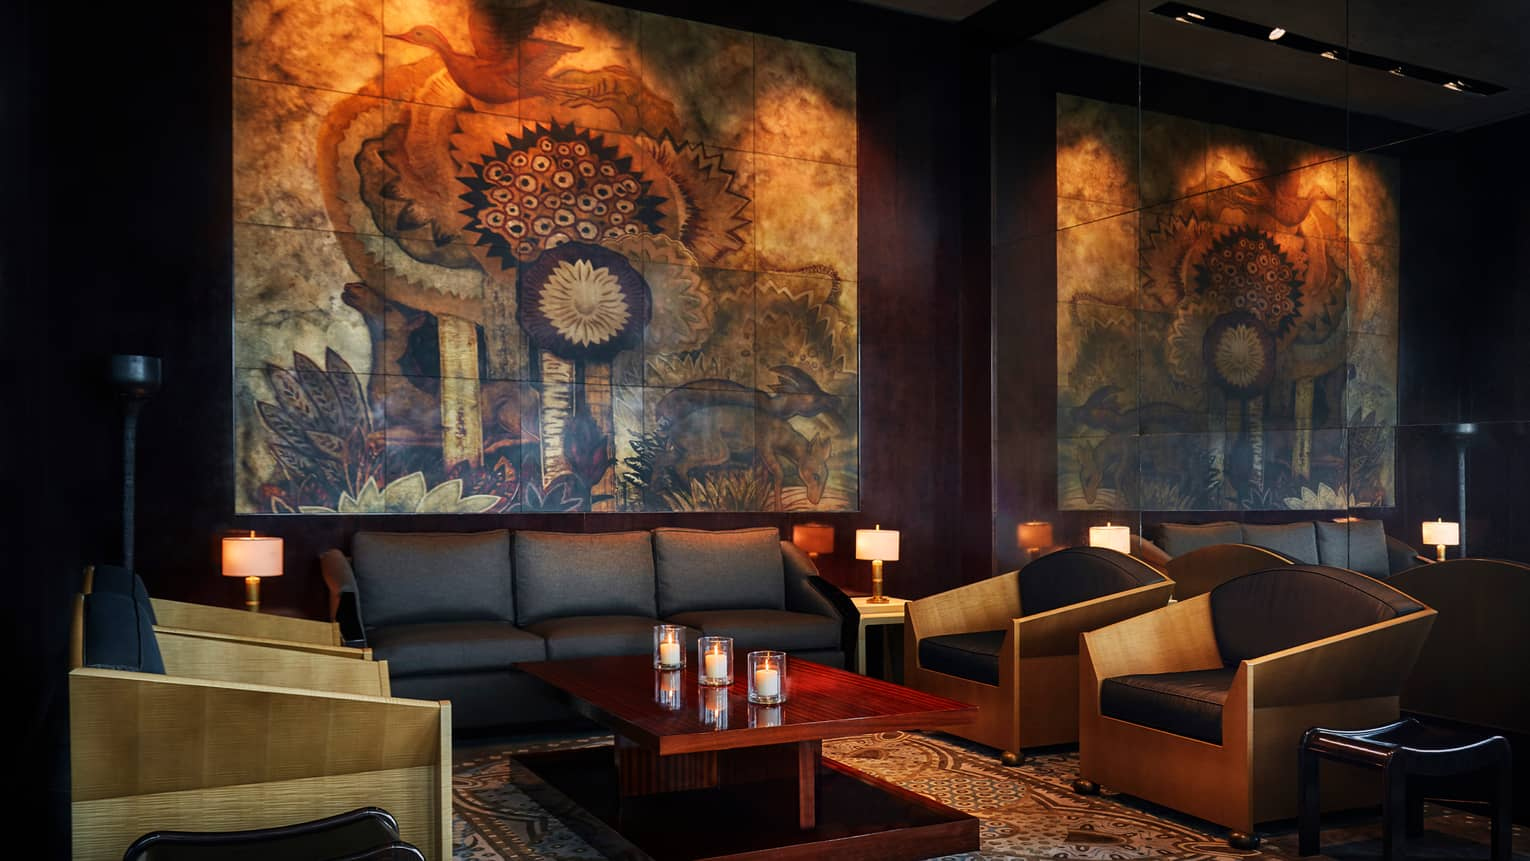 CUT by Wolfgang Puck dimly-lit lounge area with leather sofas and chair, large mural